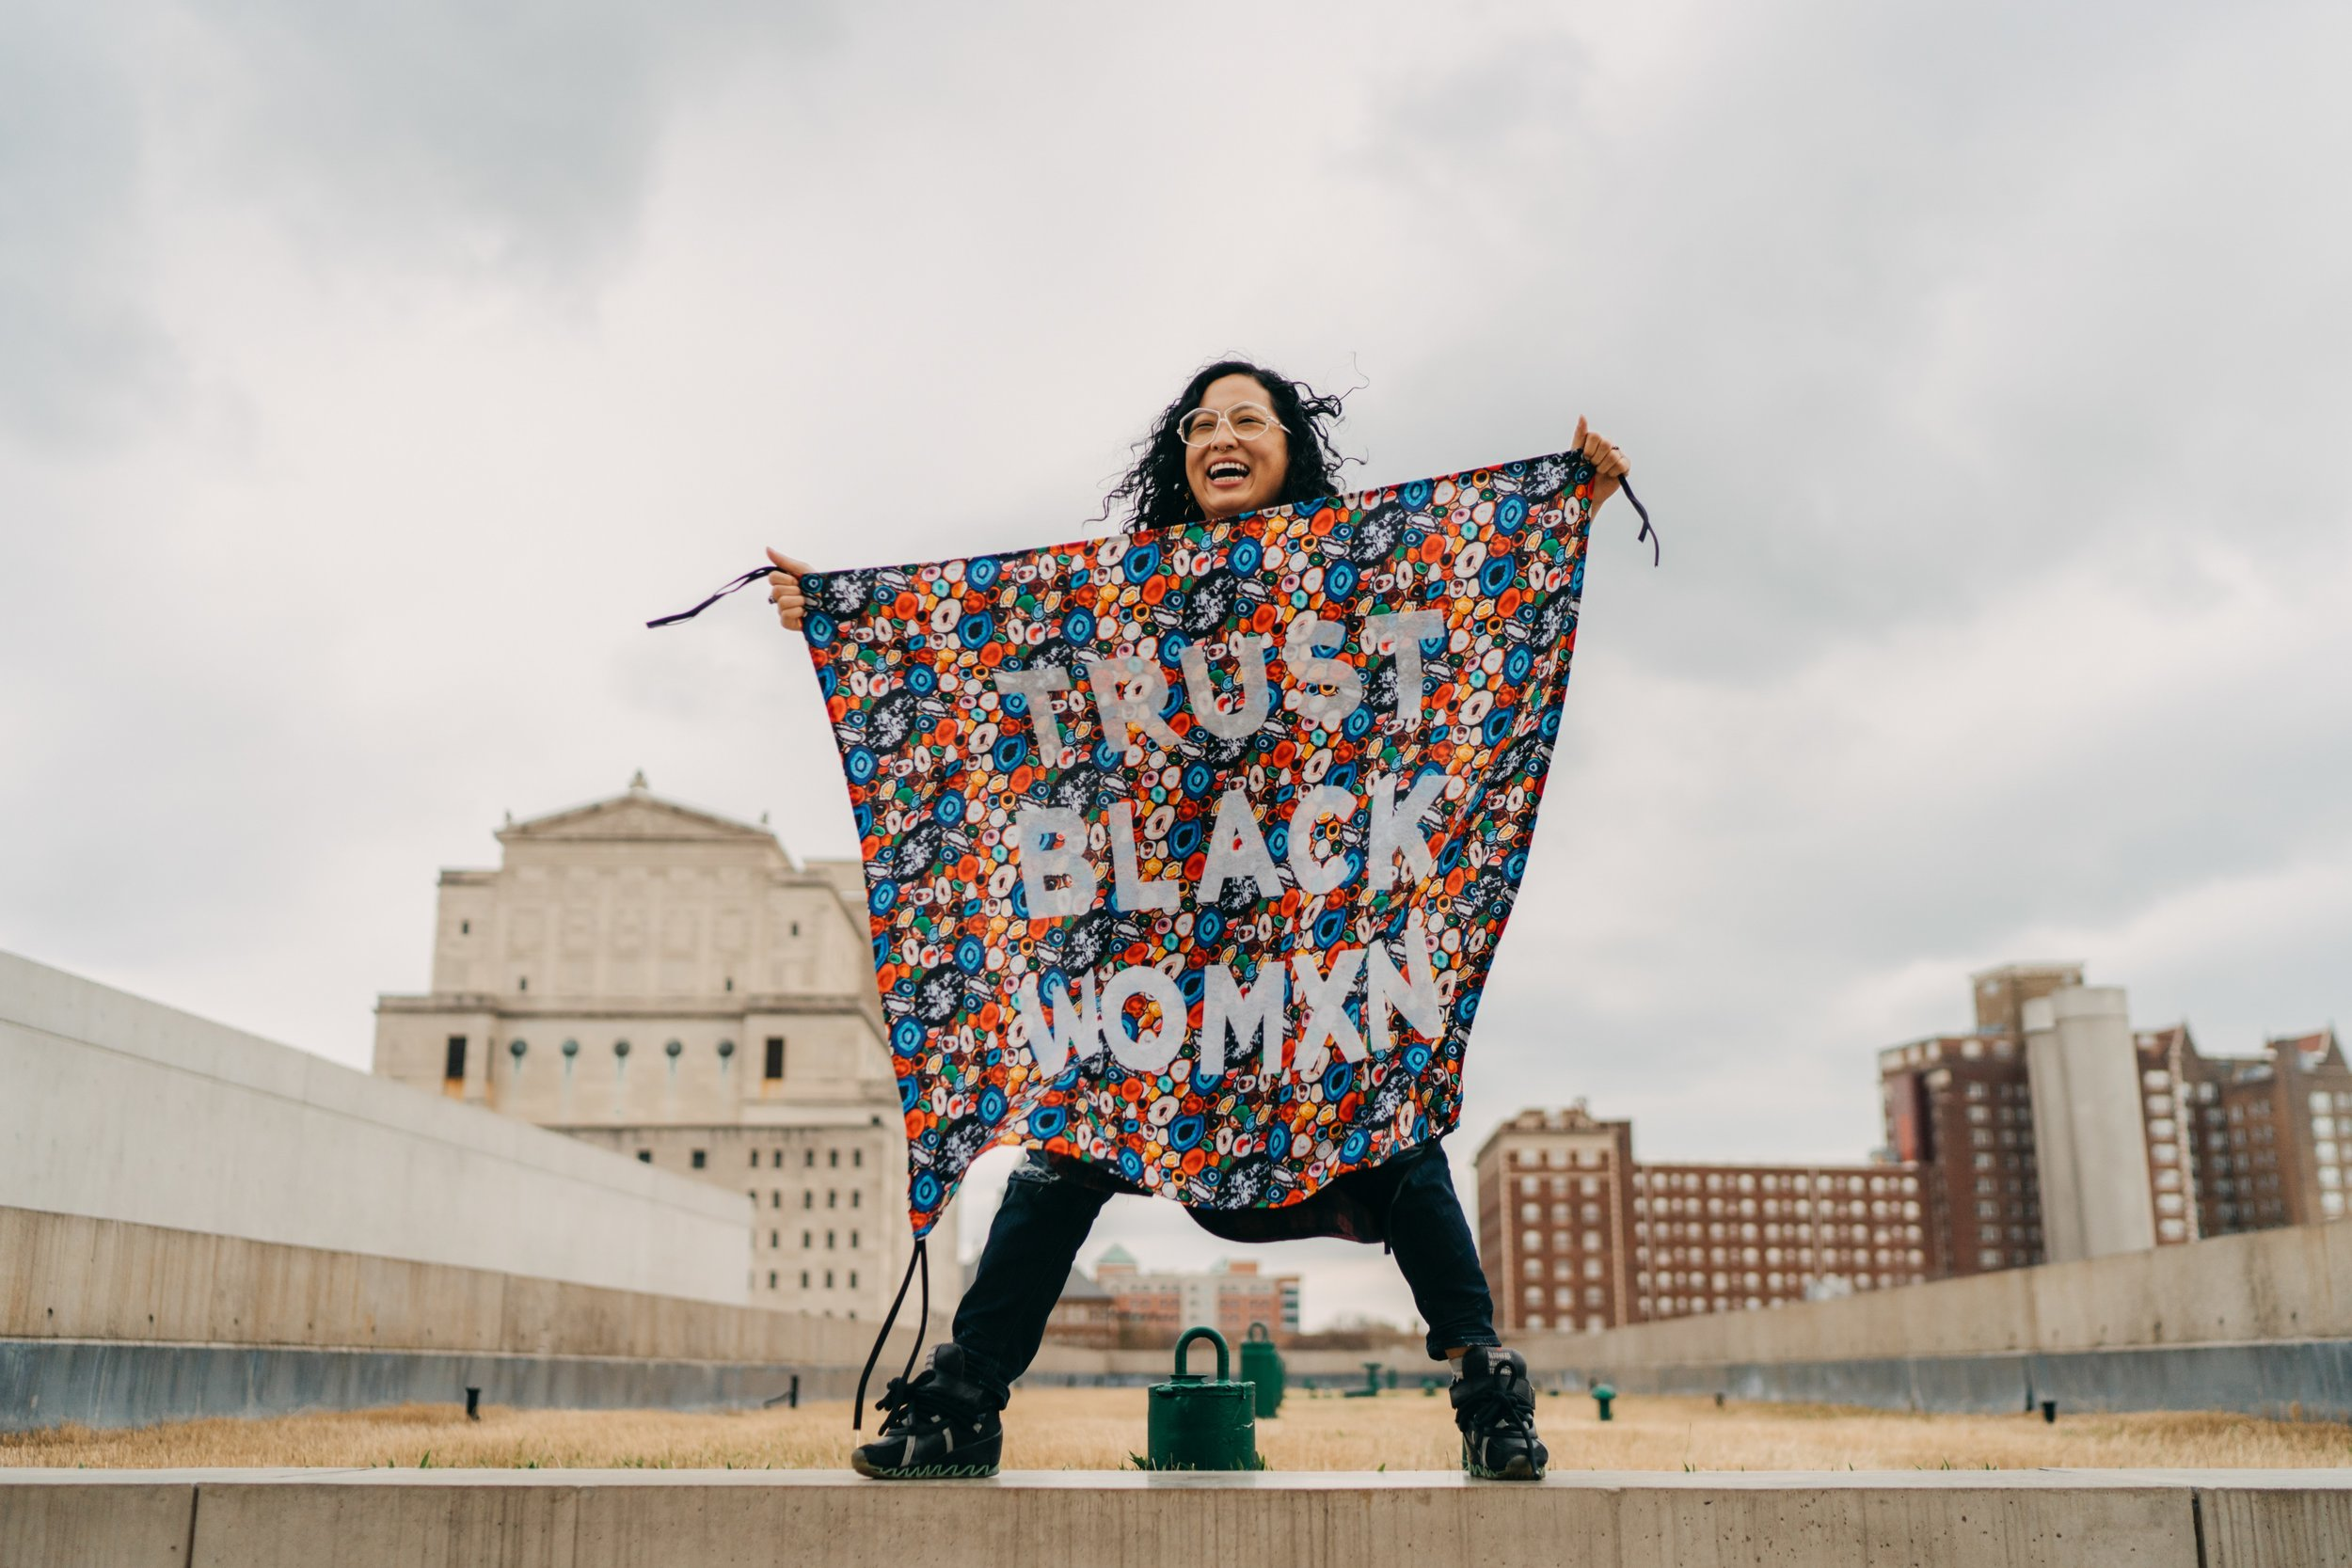 """""""Protest Banner Lending Library,"""" 2018. Aram Han Sifuentes holding a banner that reads """"TRUST BLACK WOMXN"""" on a rooftop. Photo by Virginia Harold. Courtesy of the Pulitzer Arts Foundation."""